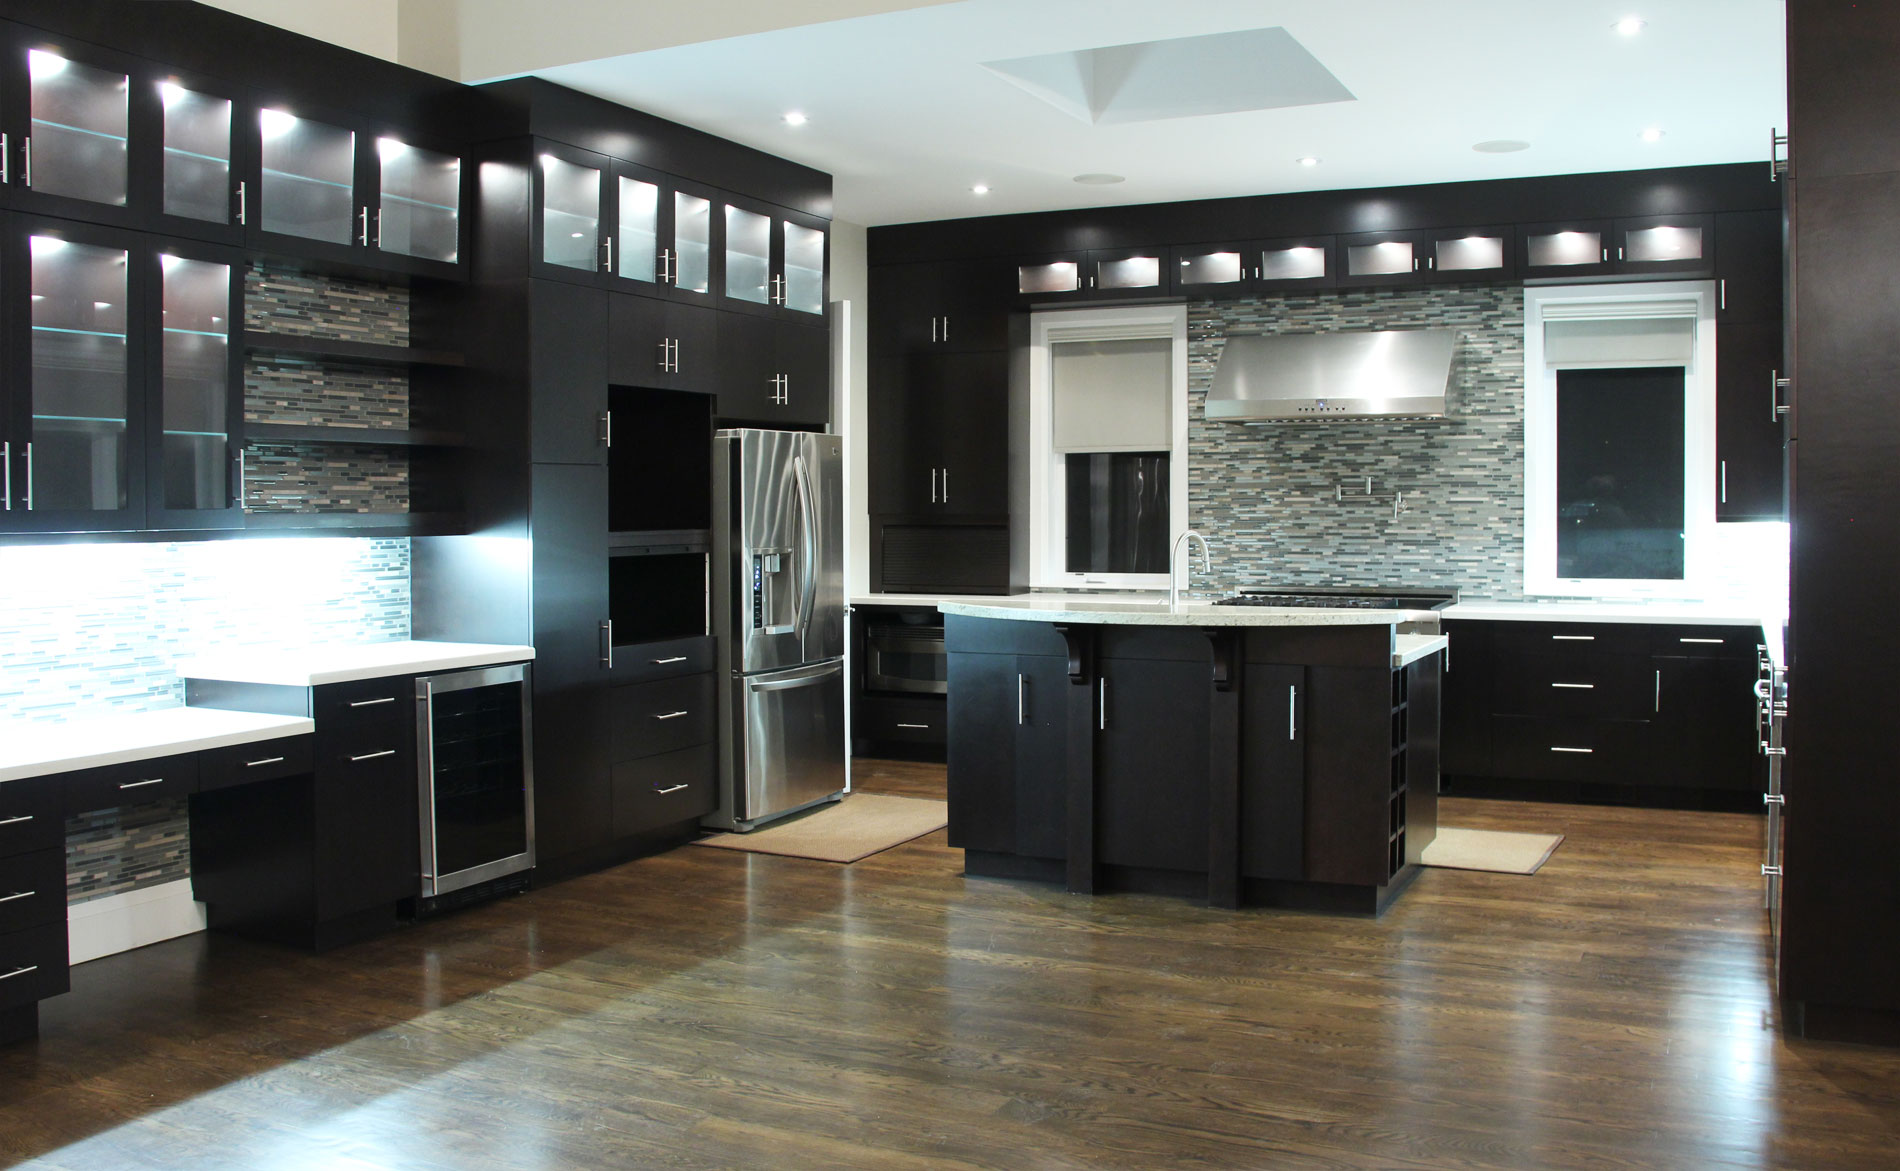 classic kitchen designs mississauga classic kitchen designs mississauga on gallery kitchen 482